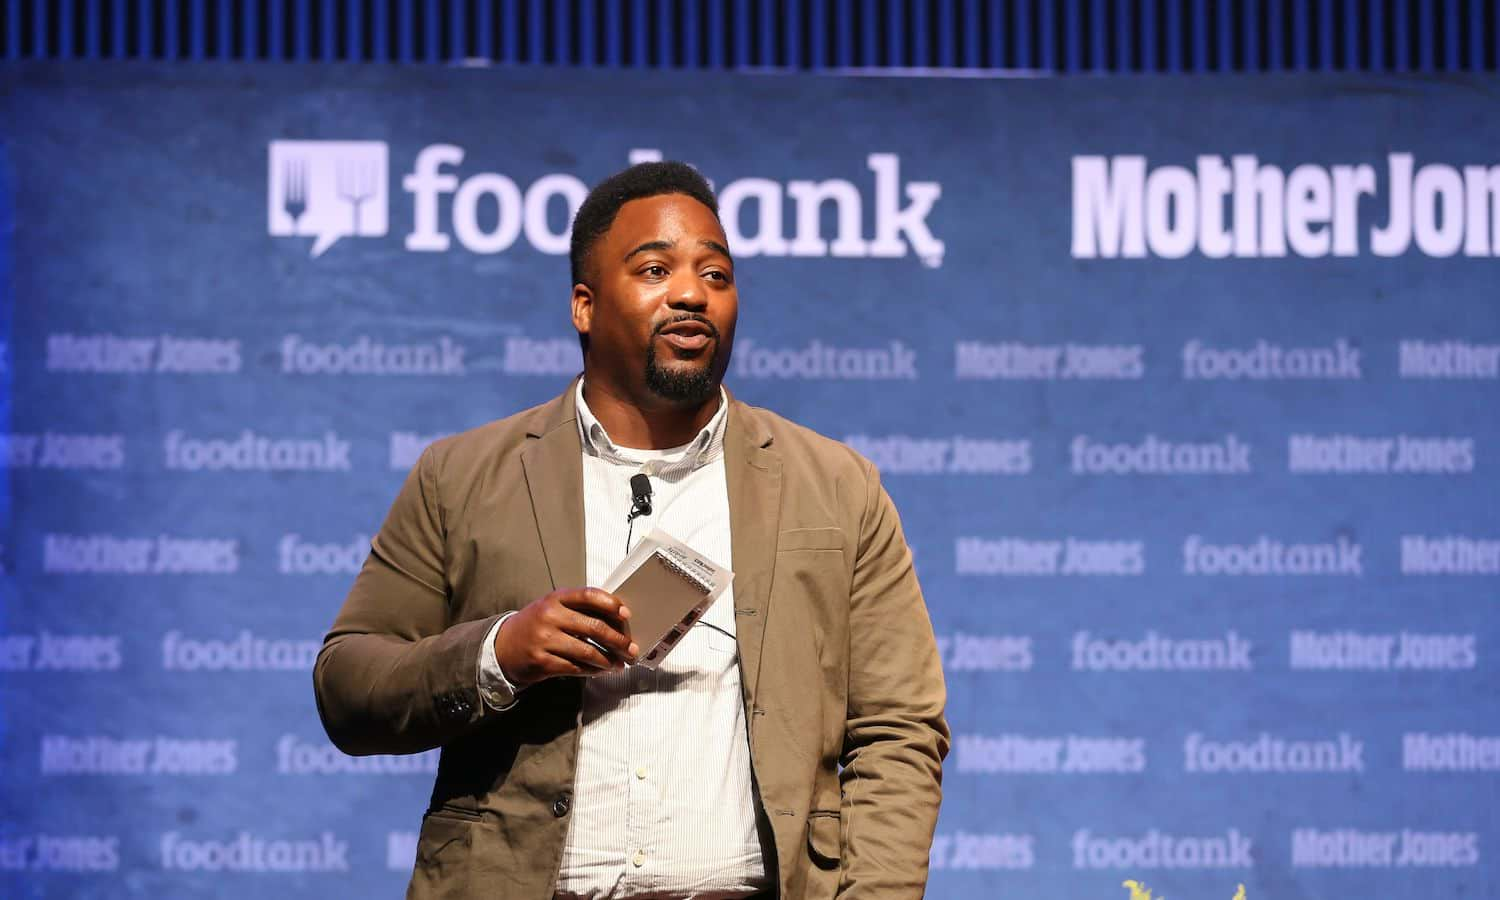 Food Tank's San Francisco Food For Thought challenged the Bay Area to think more critically about the language and stories we choose in the food system.